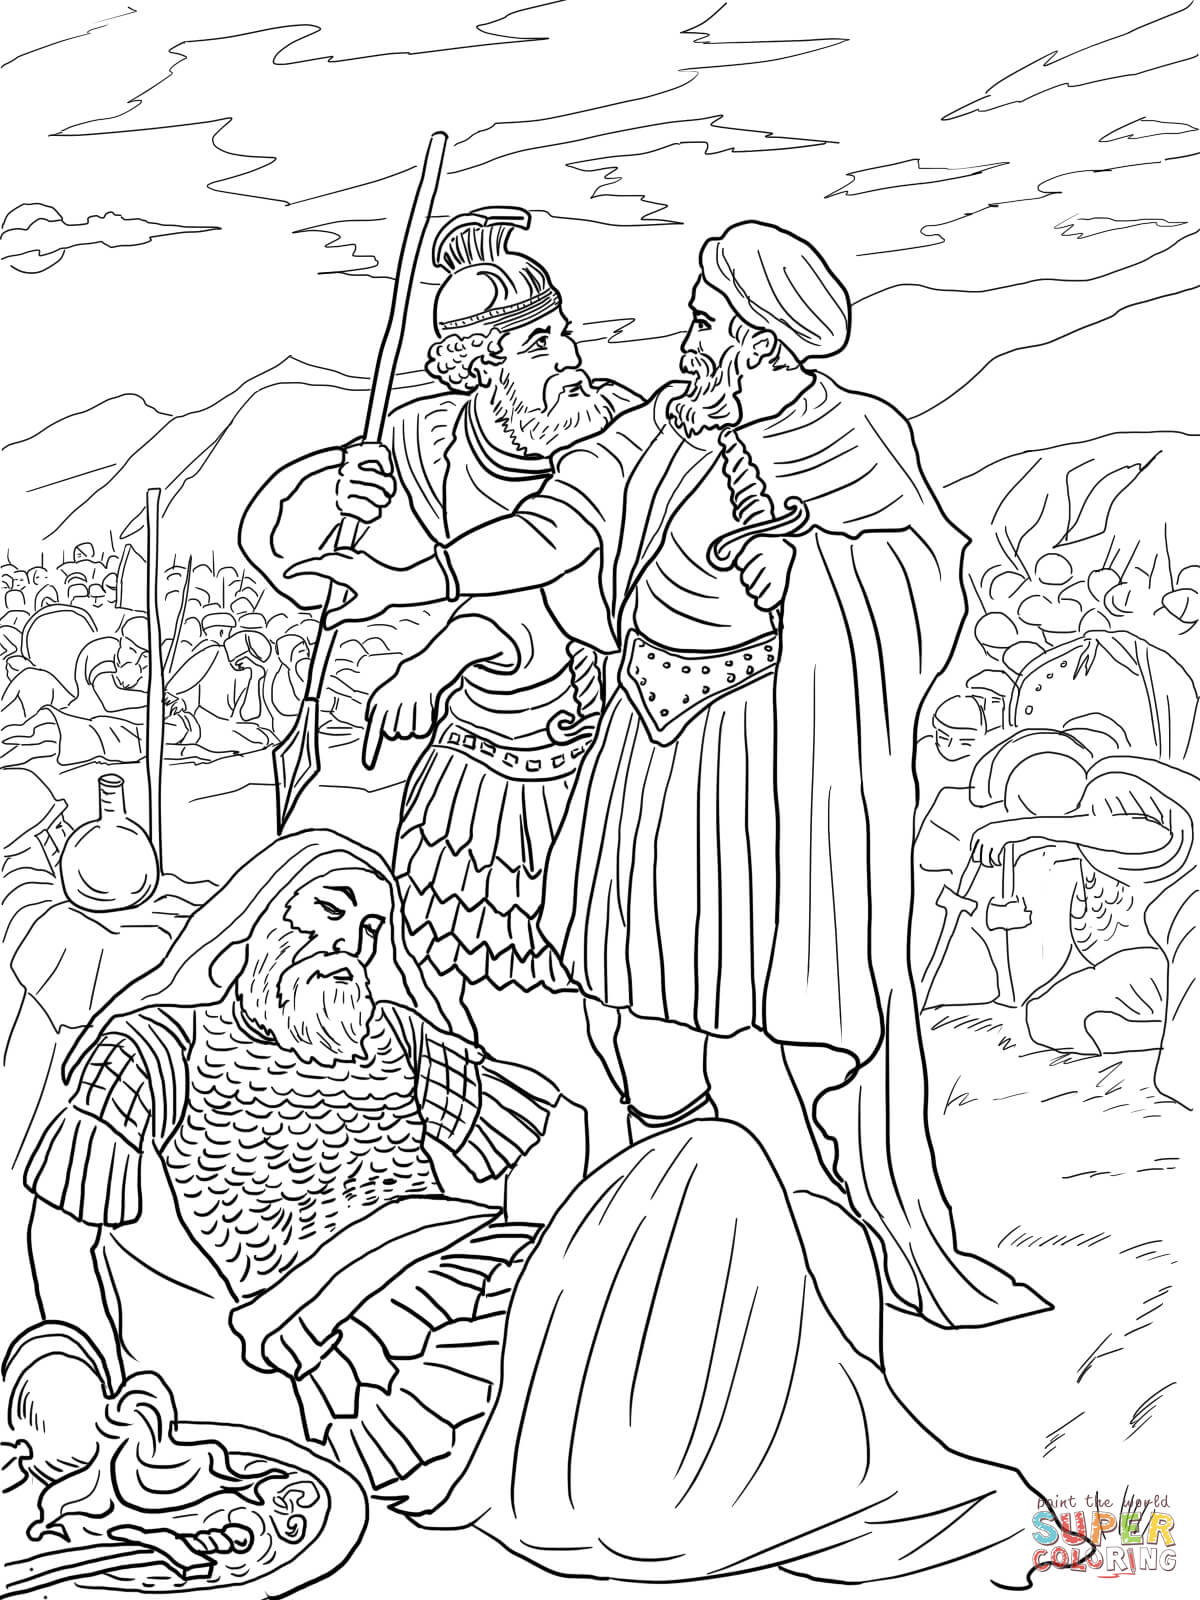 Childrens coloring sheet of saul and ananias - David Spares King Saul Coloring Page Free Printable Coloring Pages